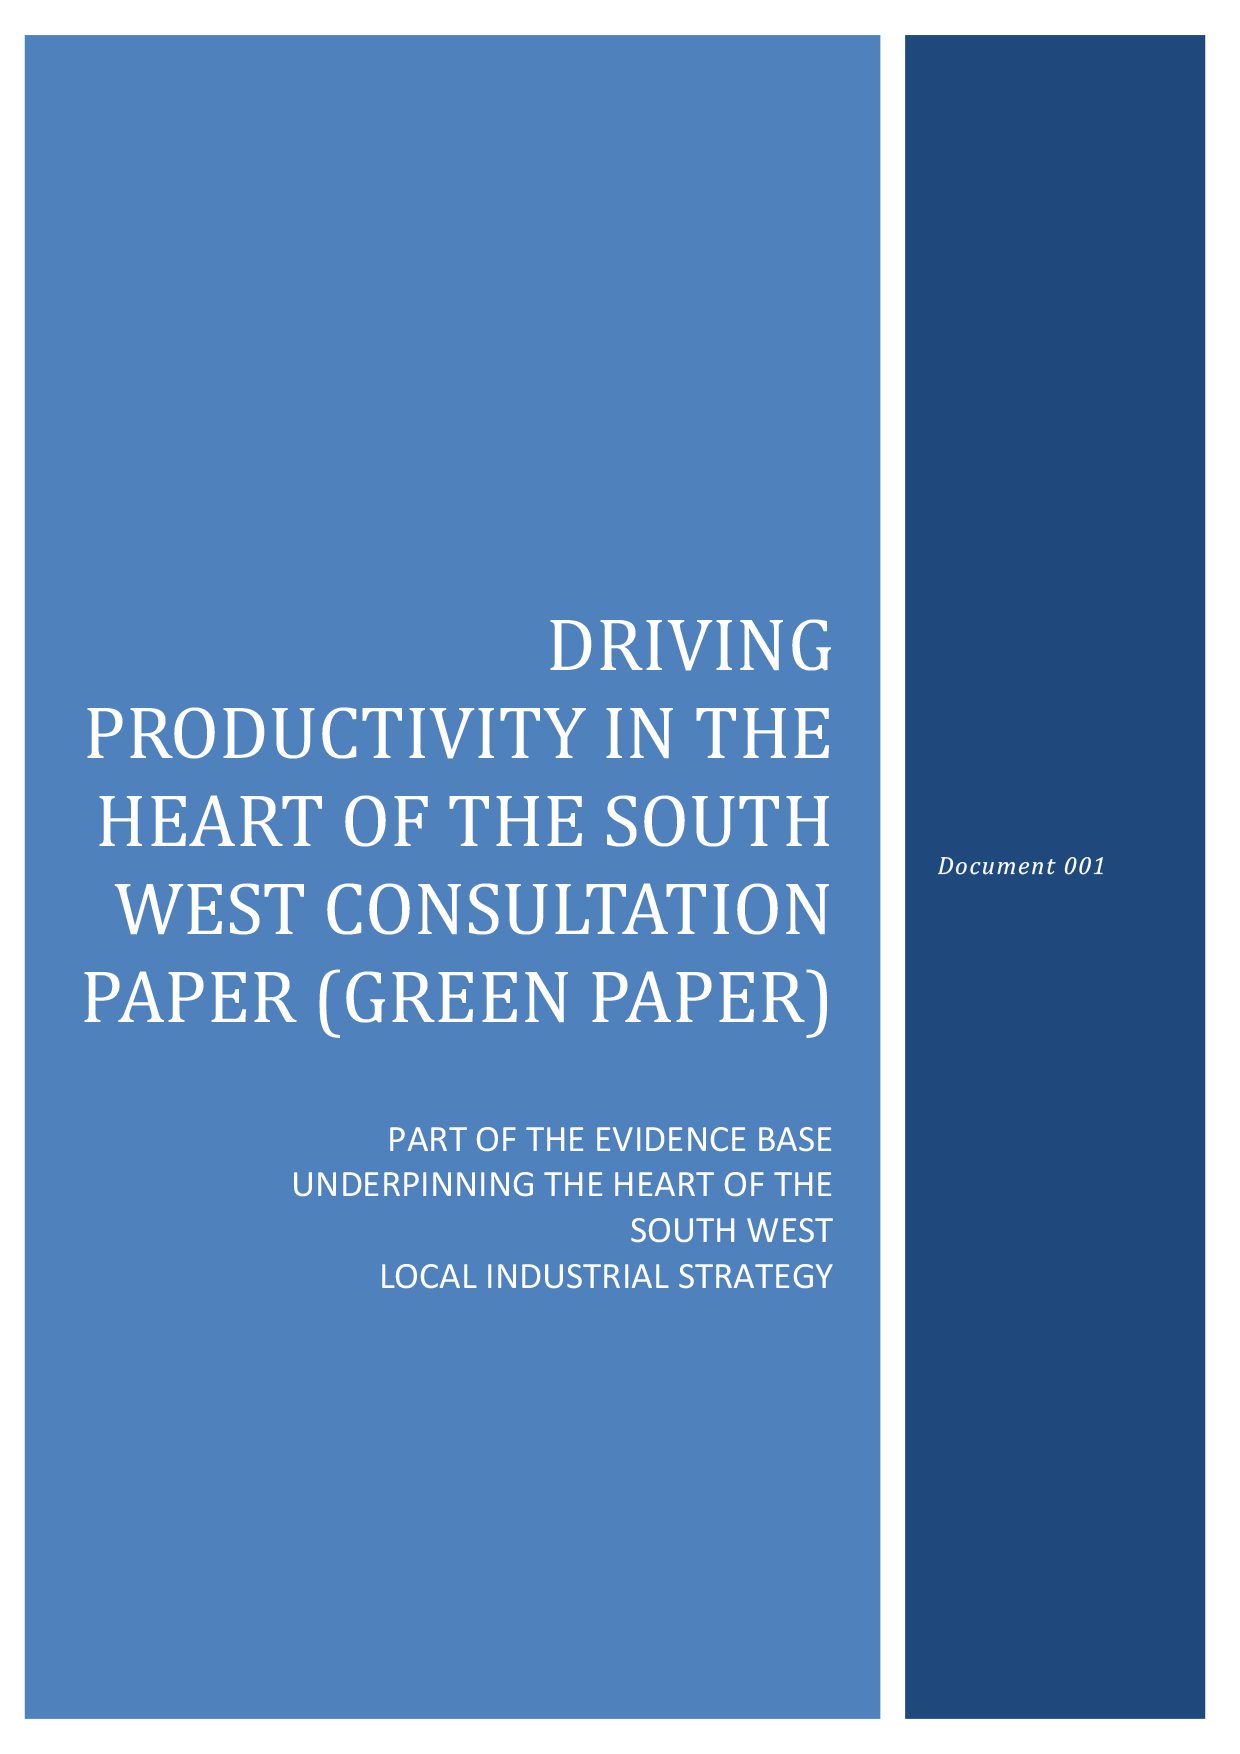 DRIVING PRODUCTIVITY IN THE HEART OF THE SOUTH WEST CONSULTATION